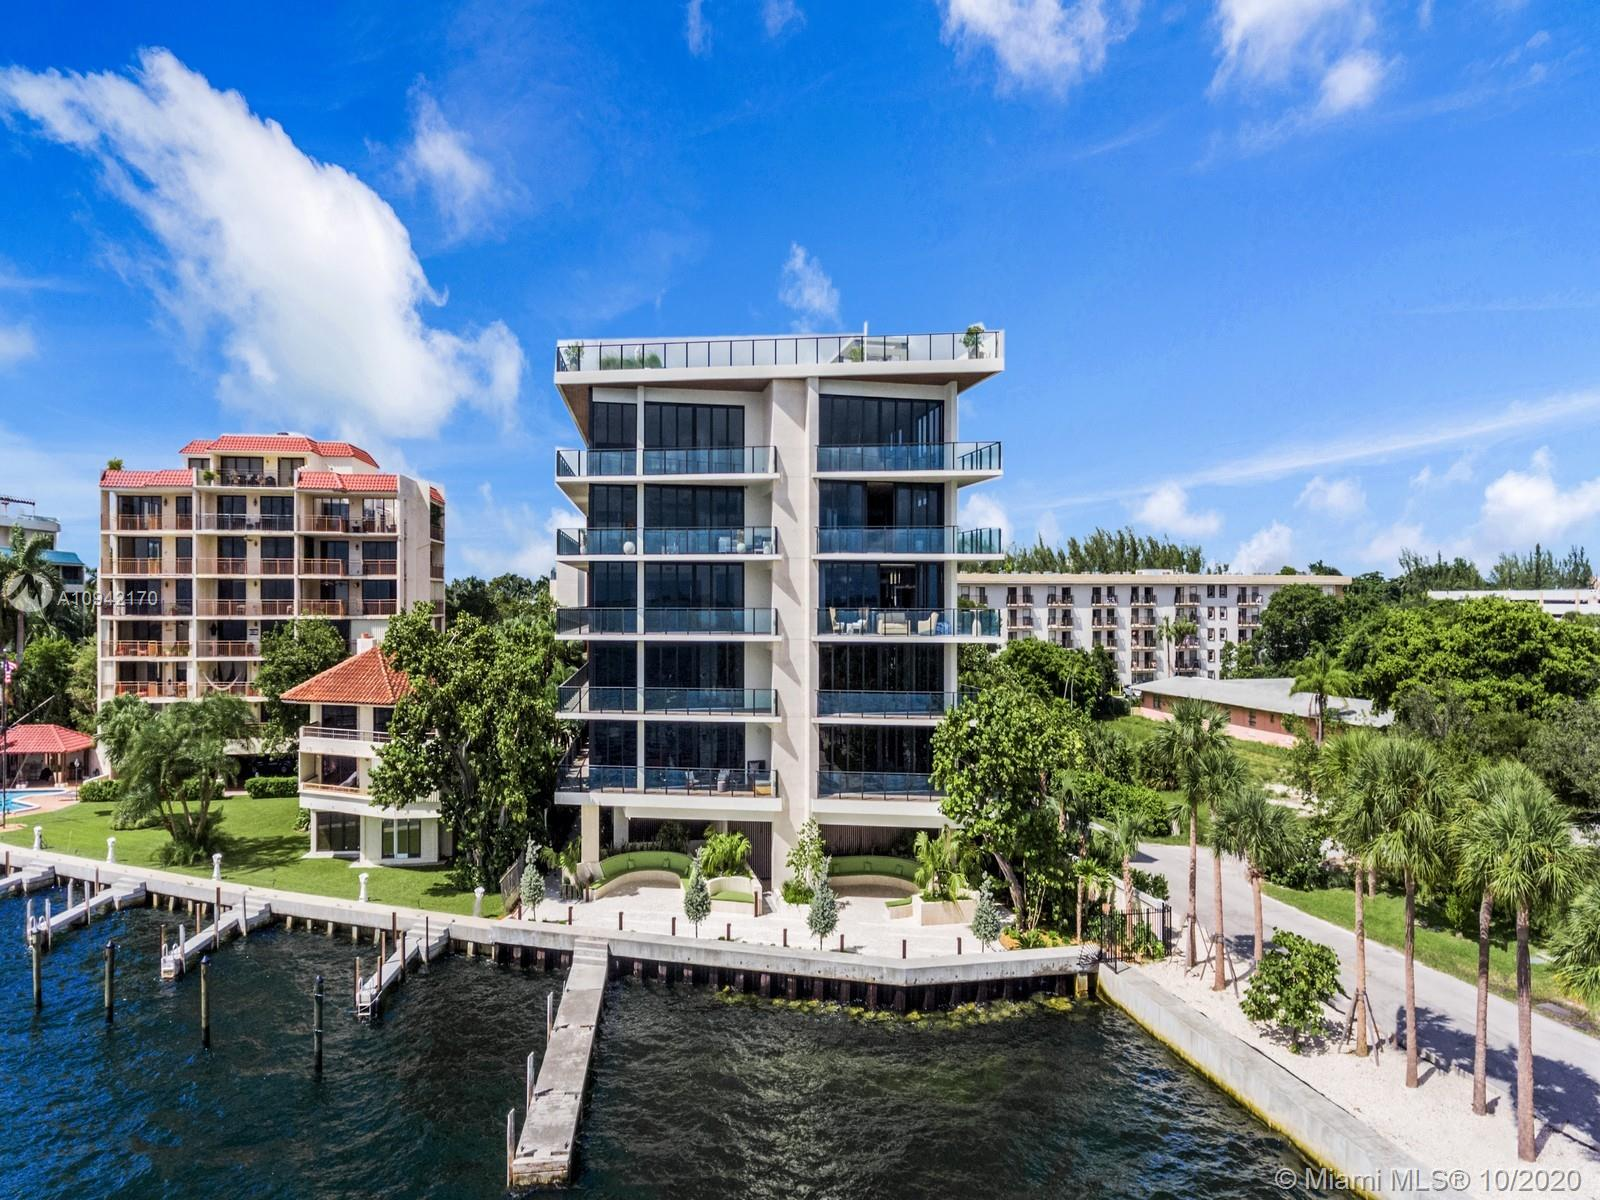 Best priced unit at the fabulous Fairchild in Coconut Grove! New boutique waterfront development with only 26 residences designed by renowned Architect Max Strang in collaboration with acclaimed interior designer, Rafael de Cardenas. 2nd floor Peacock floor plan features 3 bedrooms plus staff quarters, four and a half bathrooms and family room. Stunning Italian kitchen with top of the line wolf and Subzero appliances and a wet bar with wine cooler. Building includes rooftop pool with spectacular water views, summer kitchen outdoor move theater and bay lounge. 24 hour concierge services, valet parking,  and community dock. Central location close to Grove shops and restaurants and minutes from Brickell.